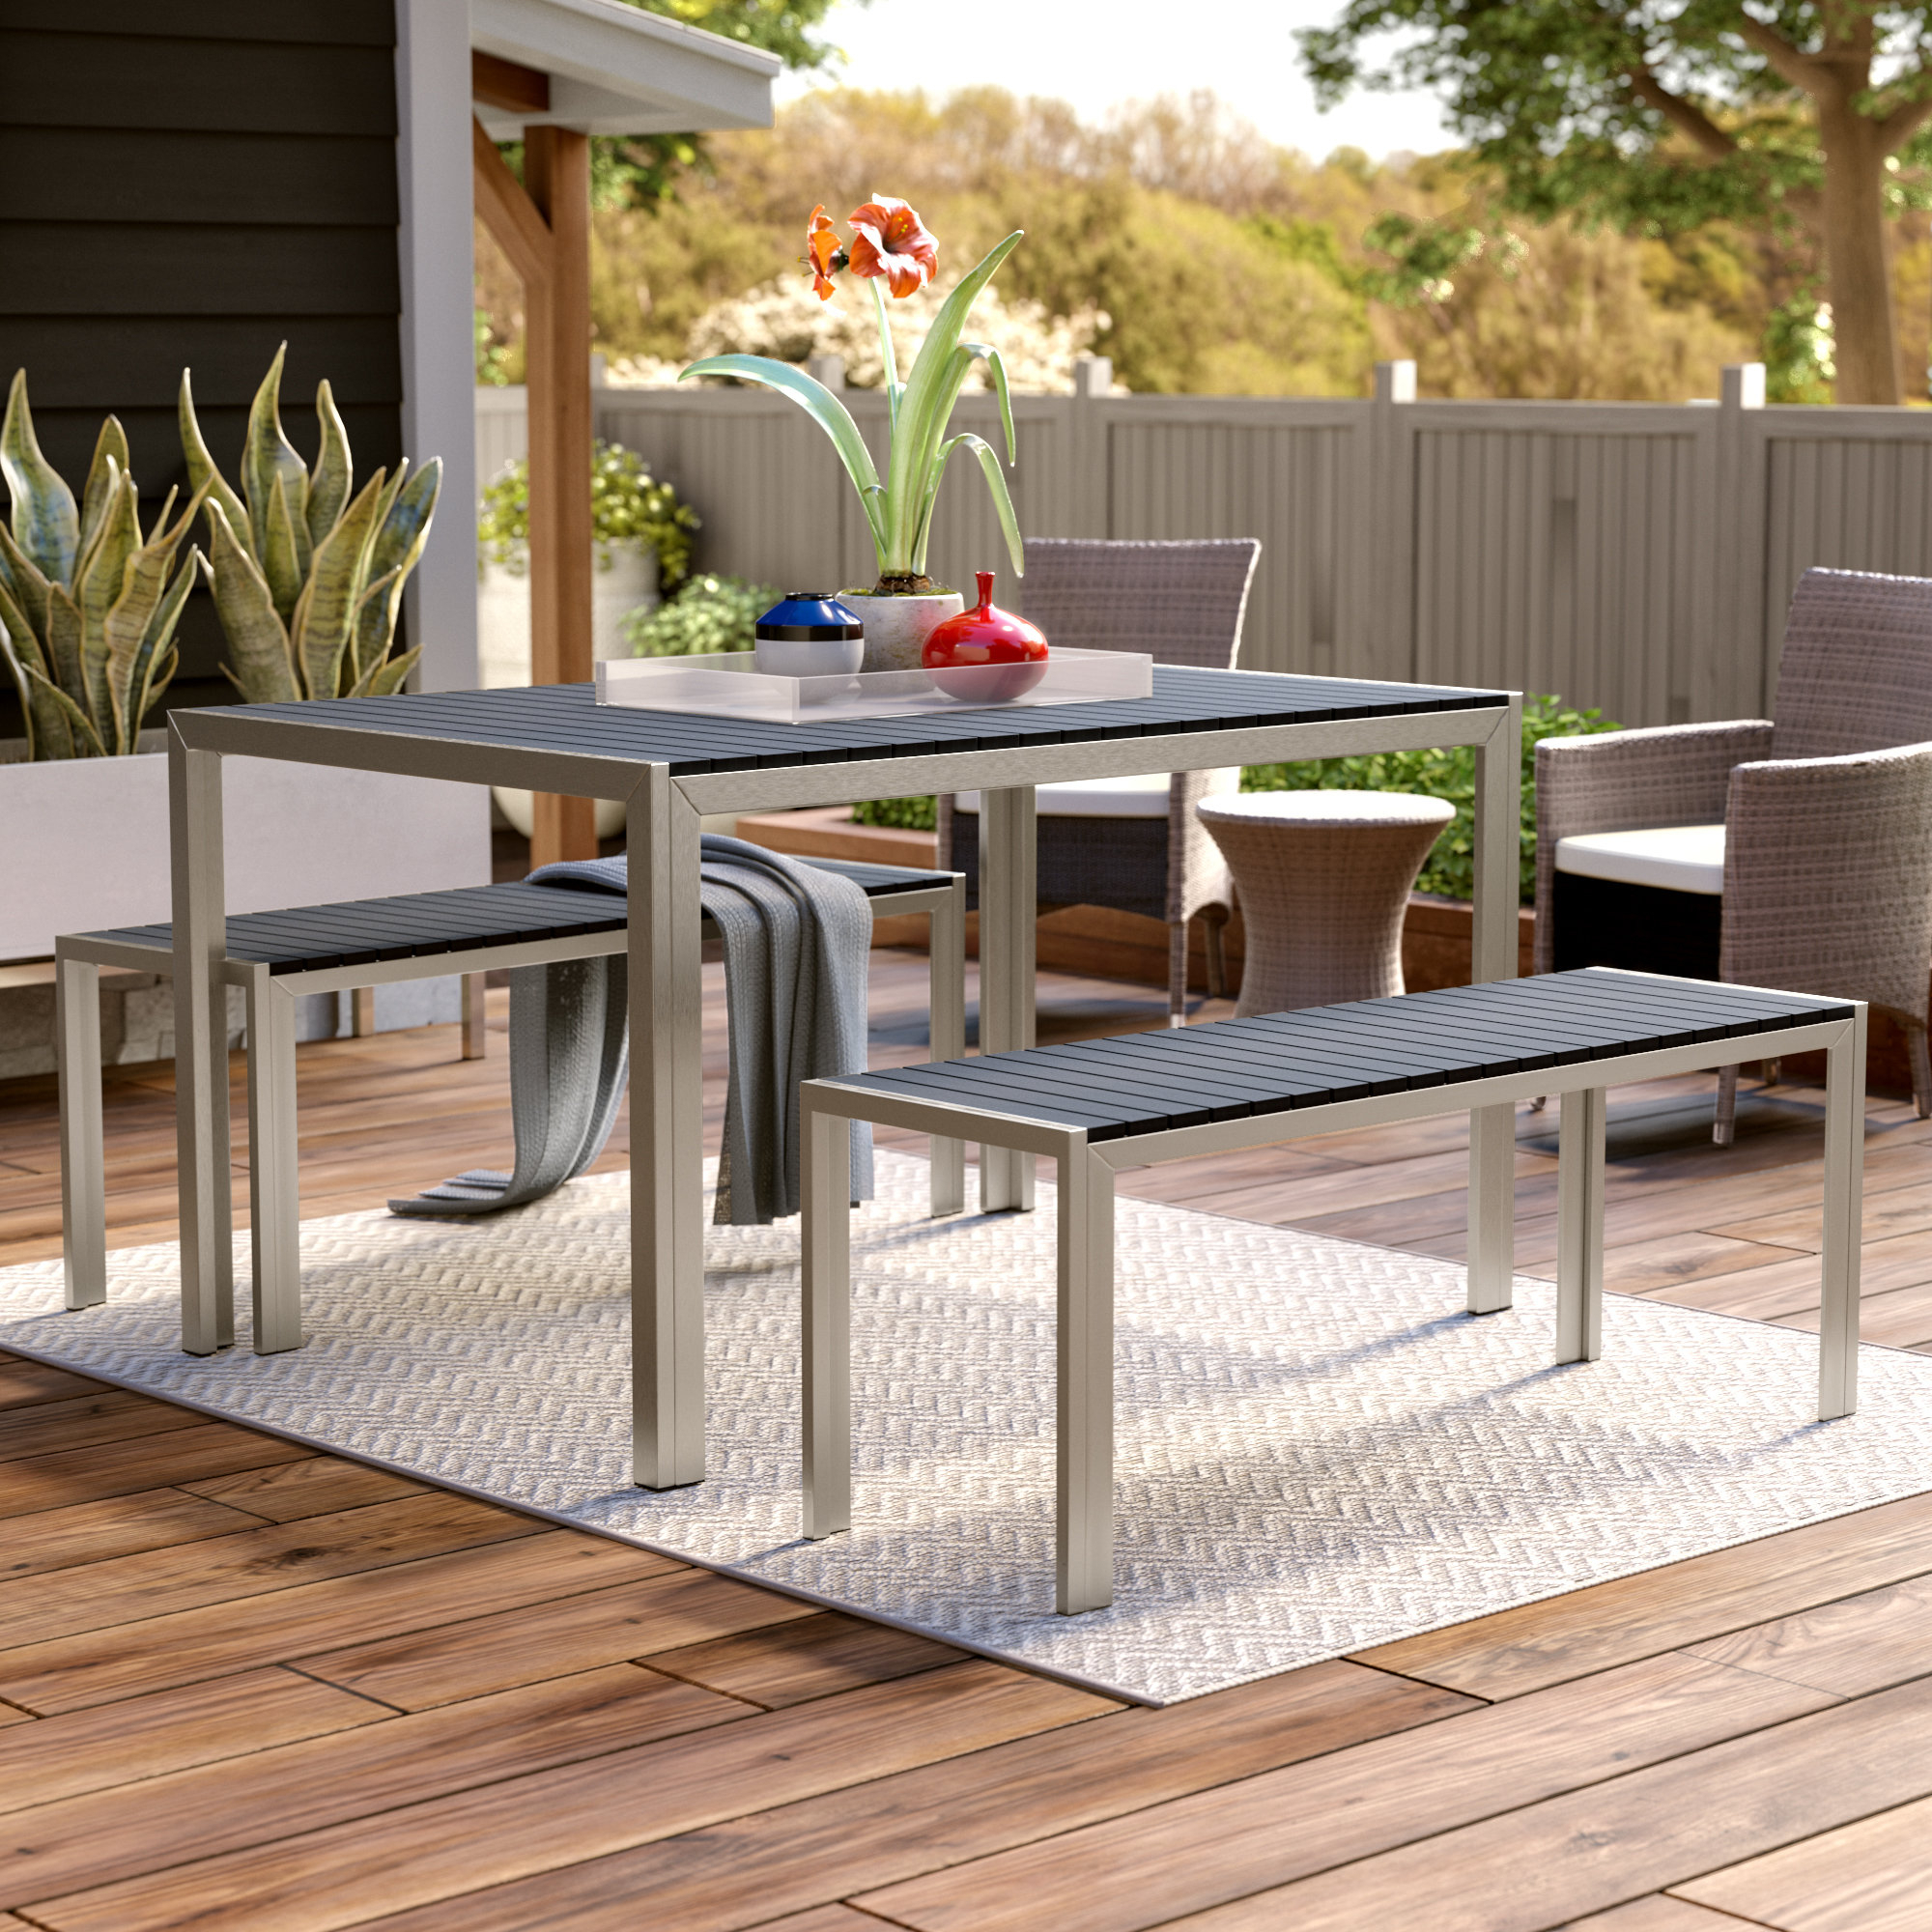 3 Piece Dining Sets Inside 2018 Serpa 3 Piece Dining Set (View 12 of 20)